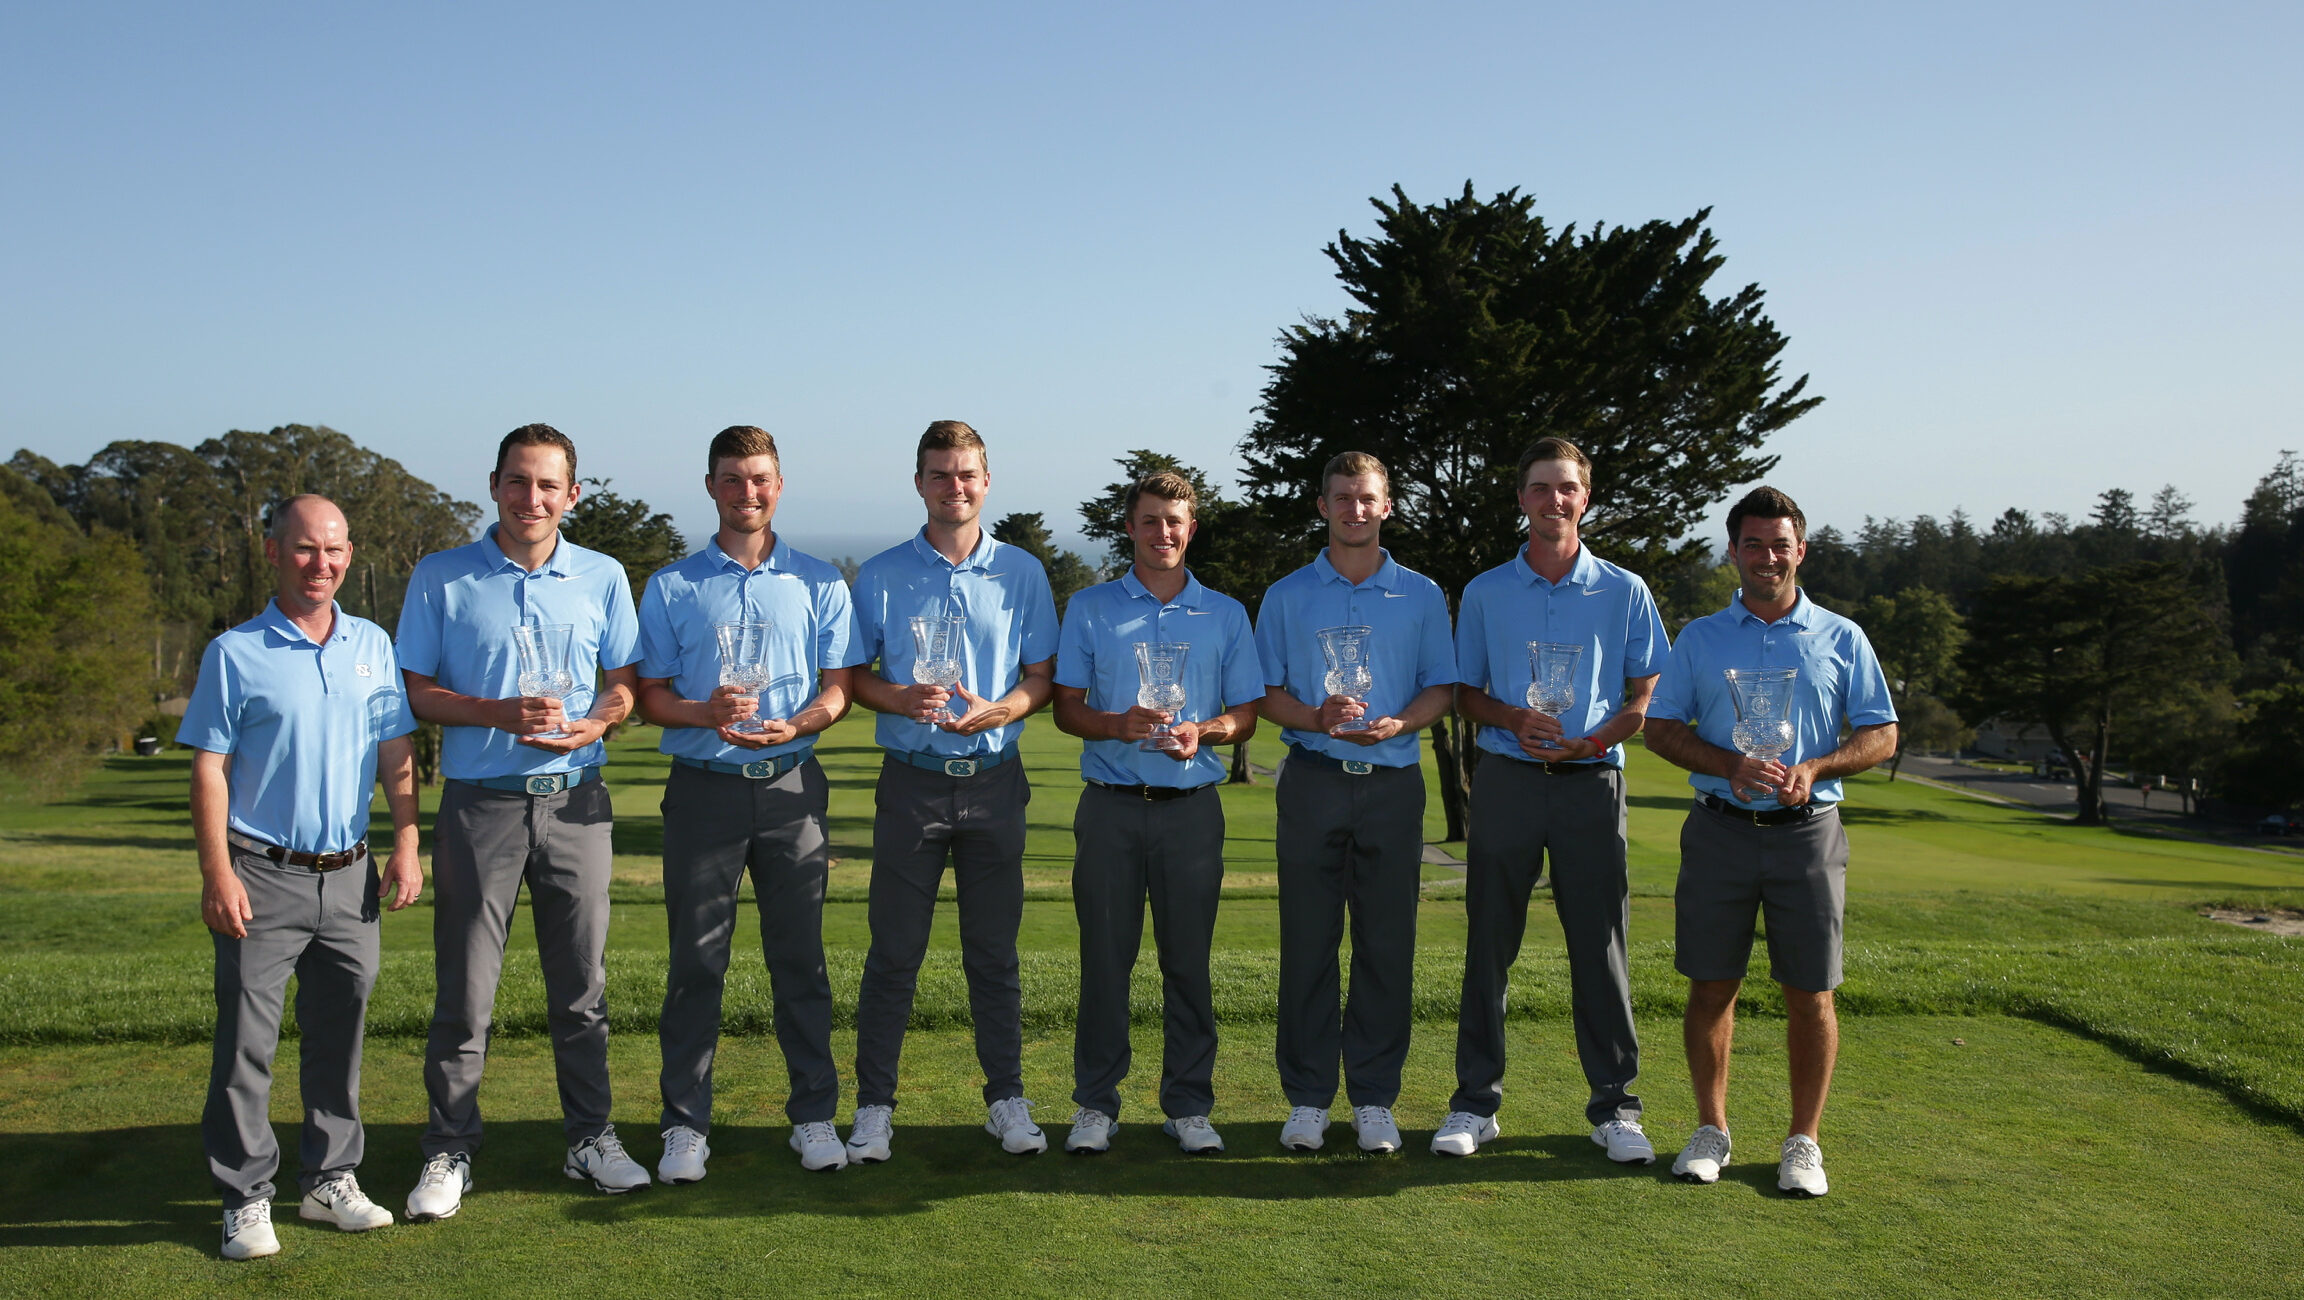 2018 Team Champions: North Carolina Tarheels